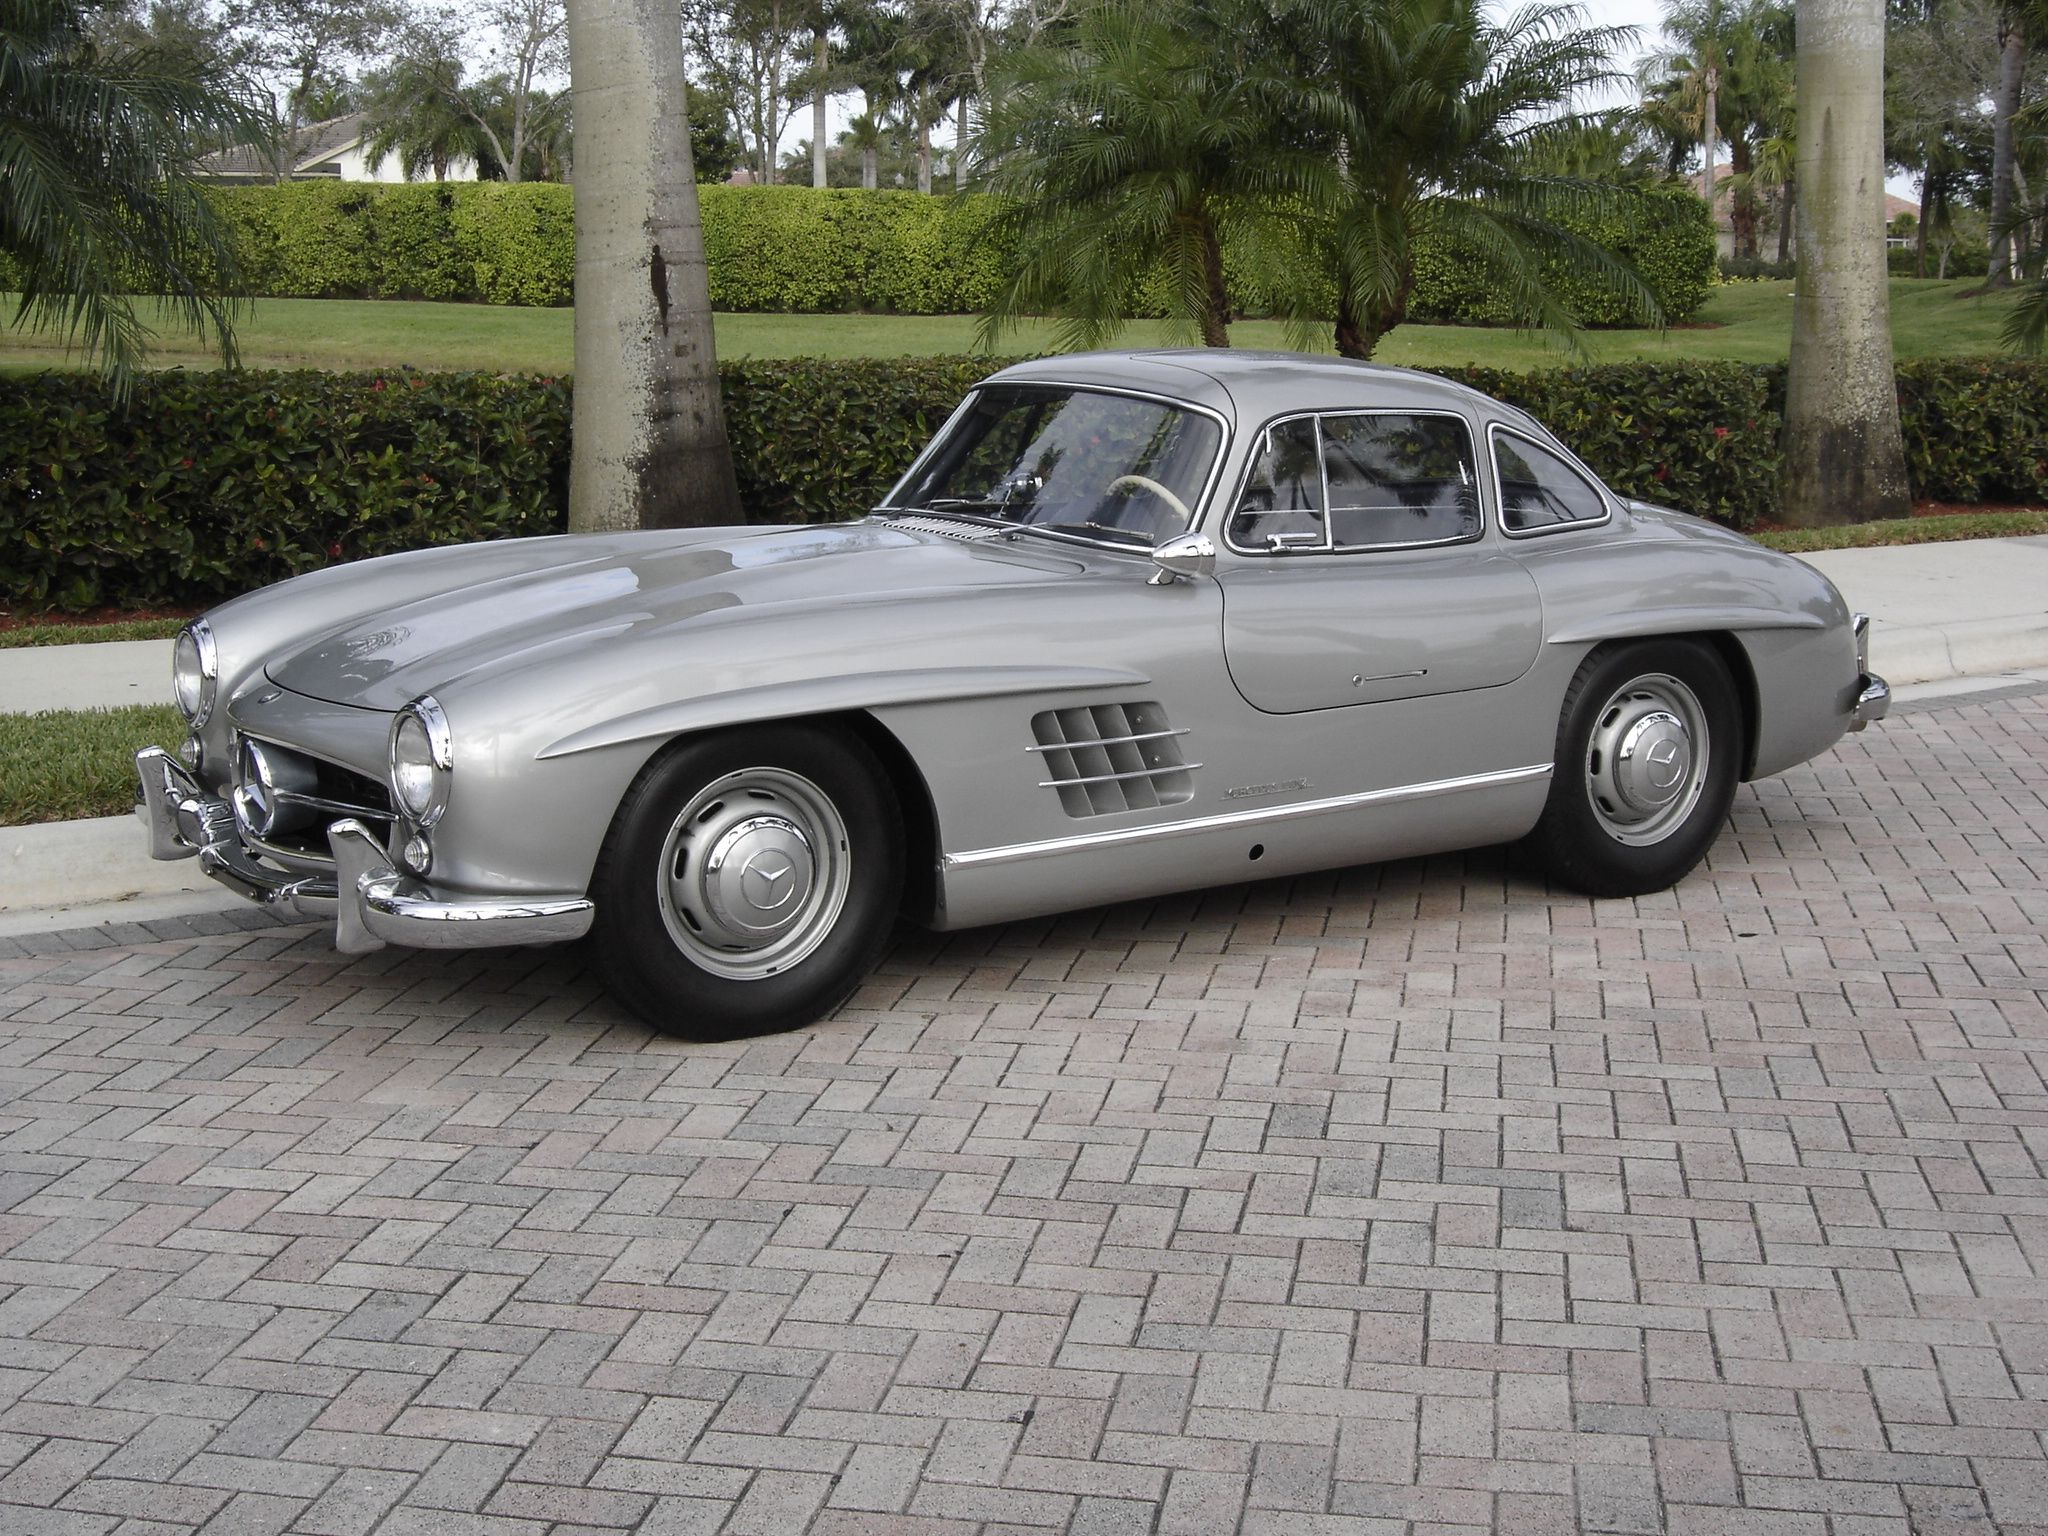 1955 Mercedes Benz Gullwing Coupe With Images Mercedes Benz